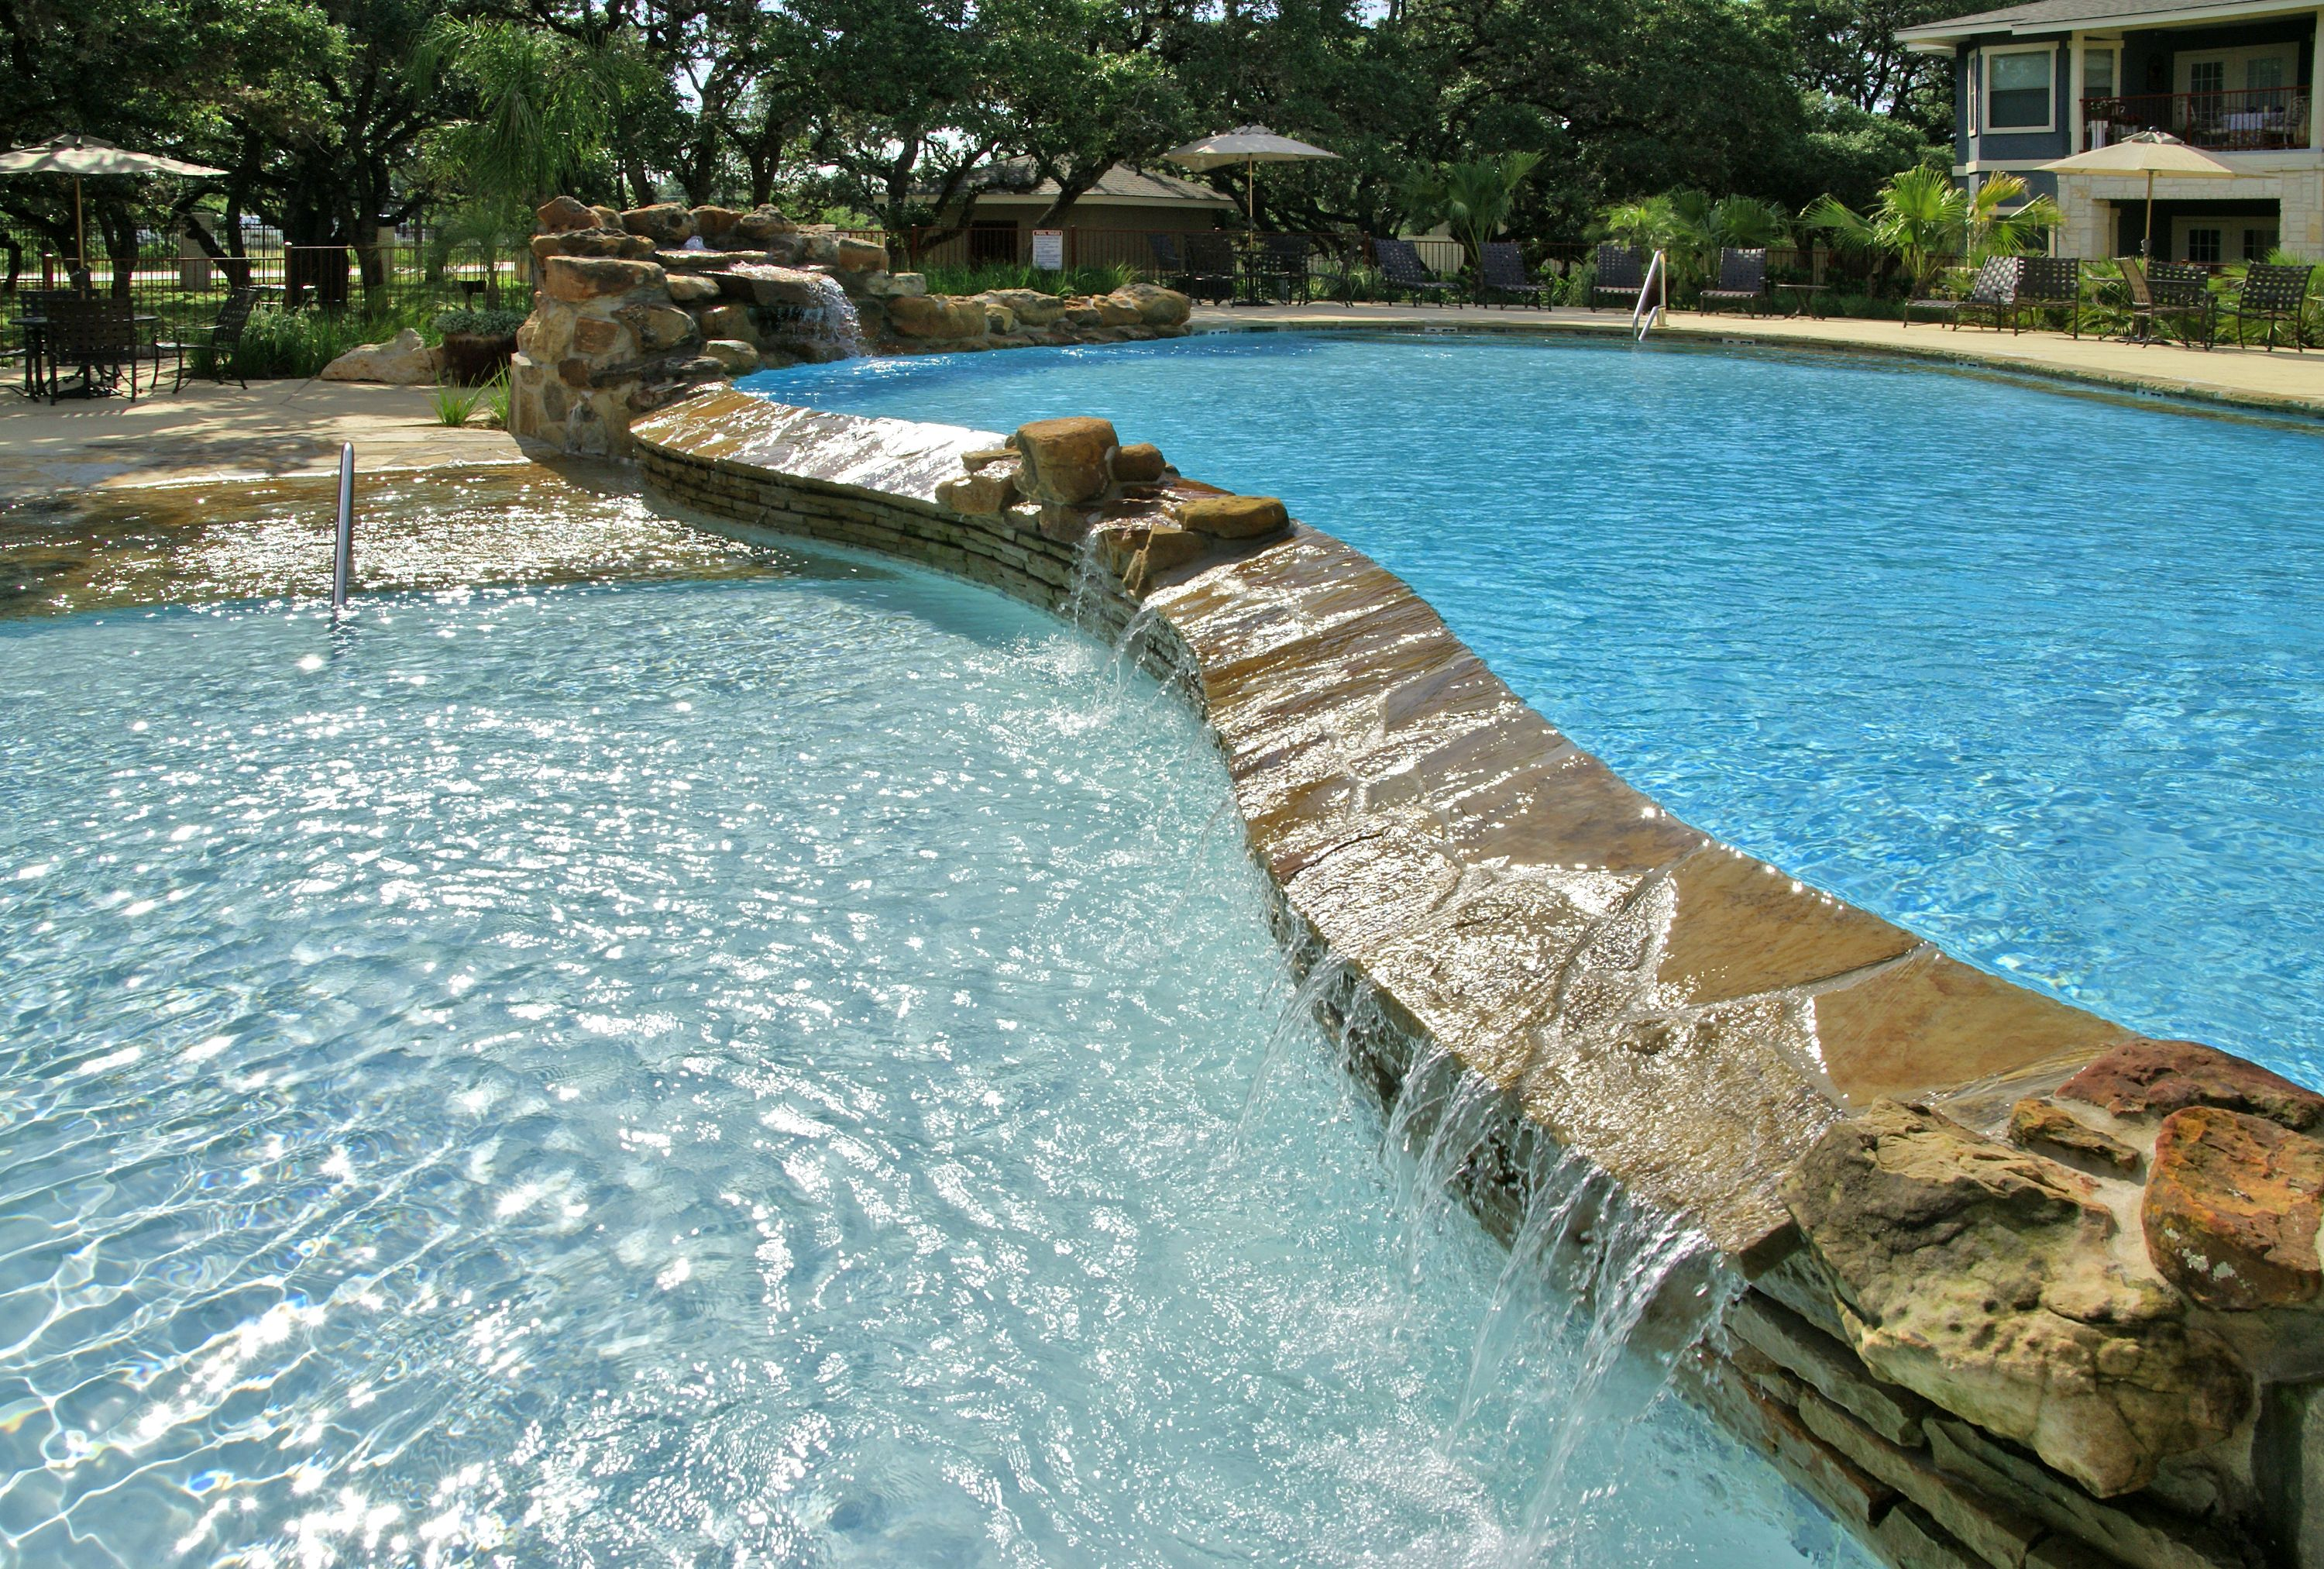 Hill Country Apartment Pool With A Negative Edge That